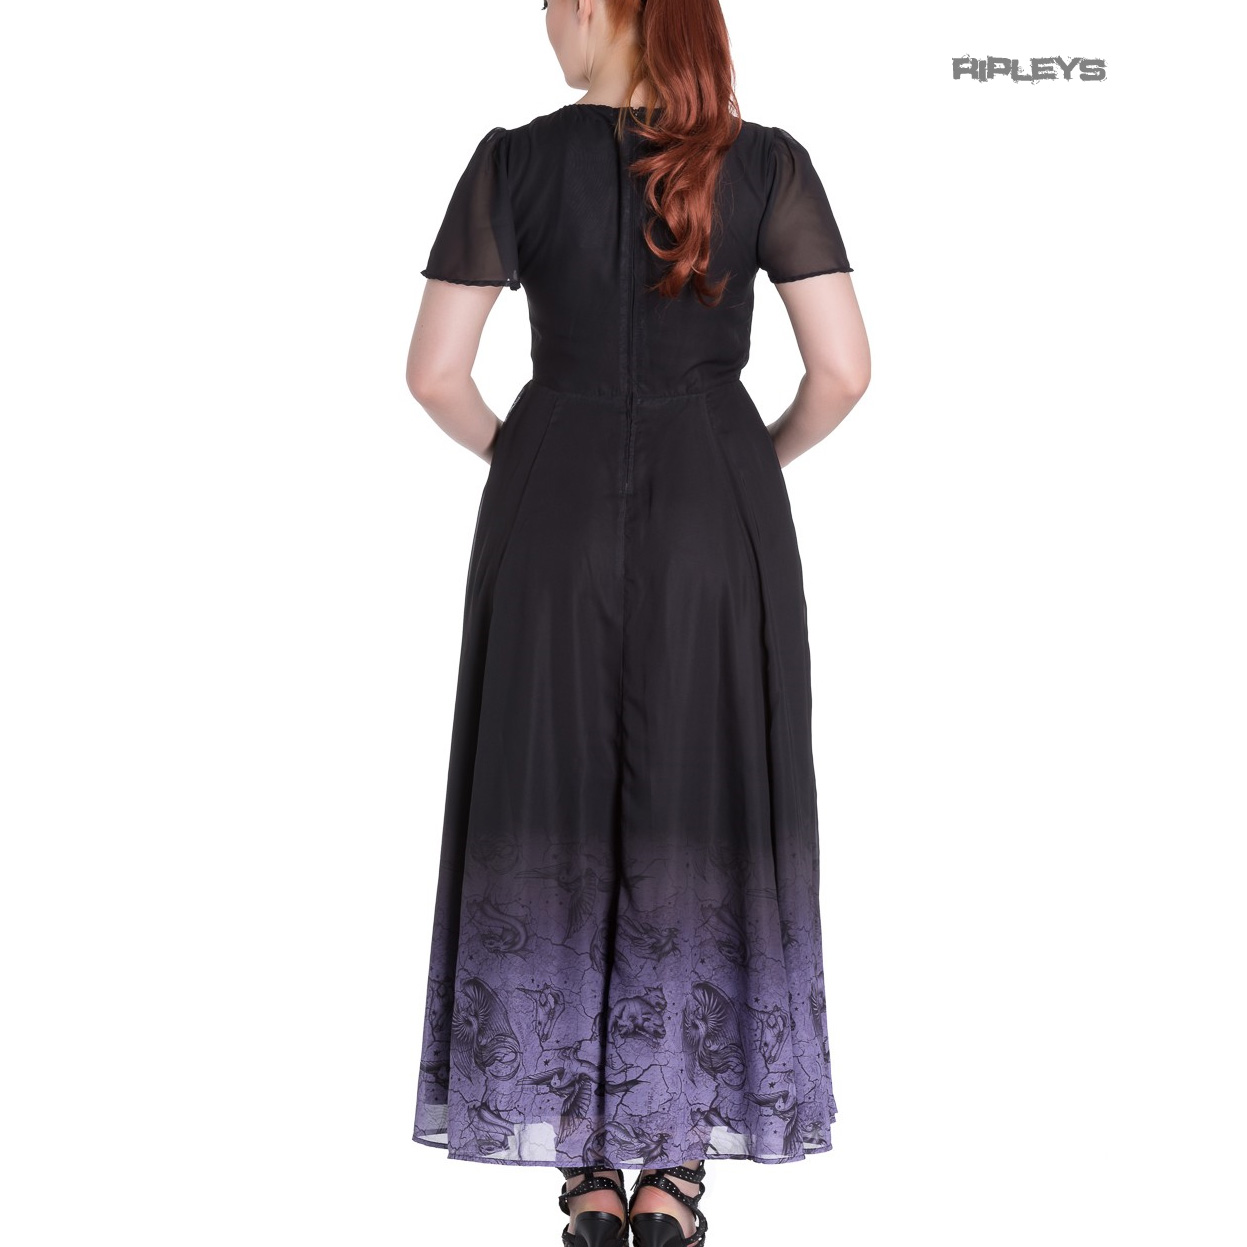 Hell-Bunny-Spin-Doctor-Goth-Maxi-Dress-EVADINE-Purple-Black-All-Sizes thumbnail 9